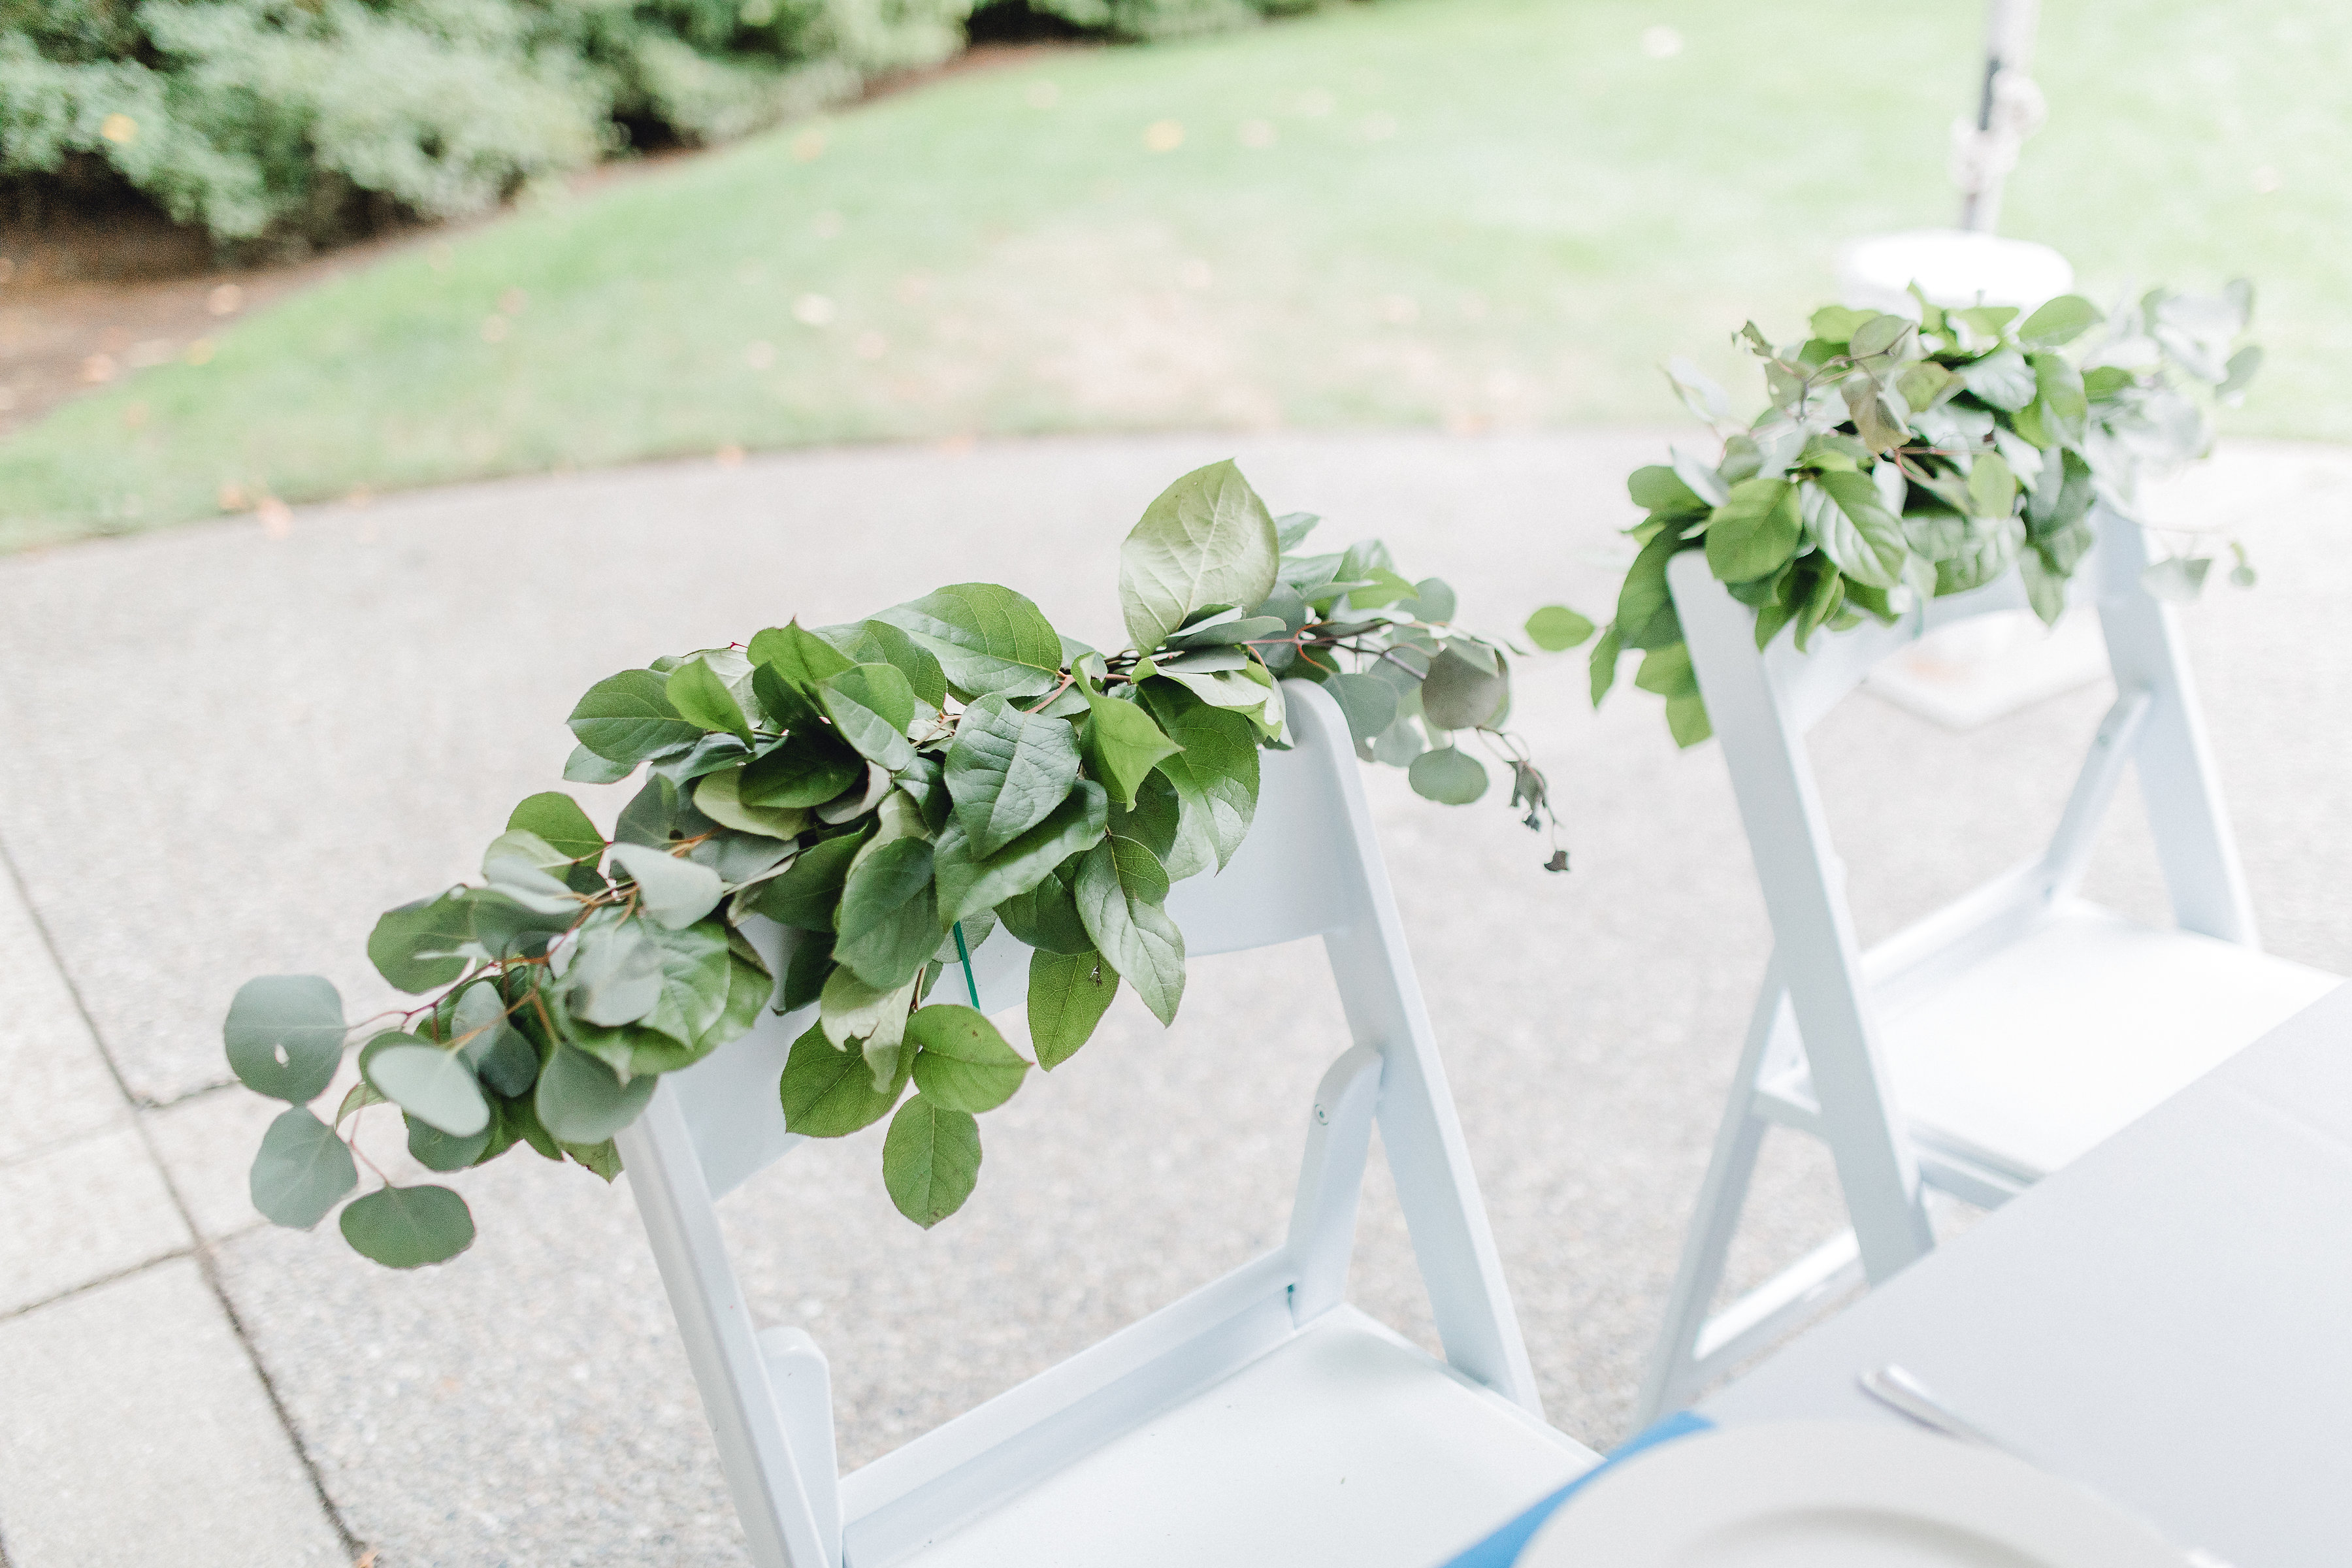 Seattle wedding, Washington wedding, bride and groom, PNW wedding, wedding inspiration, wedding flowers, Seattle bride, wedding florals, wedding decorations, wedding foliage